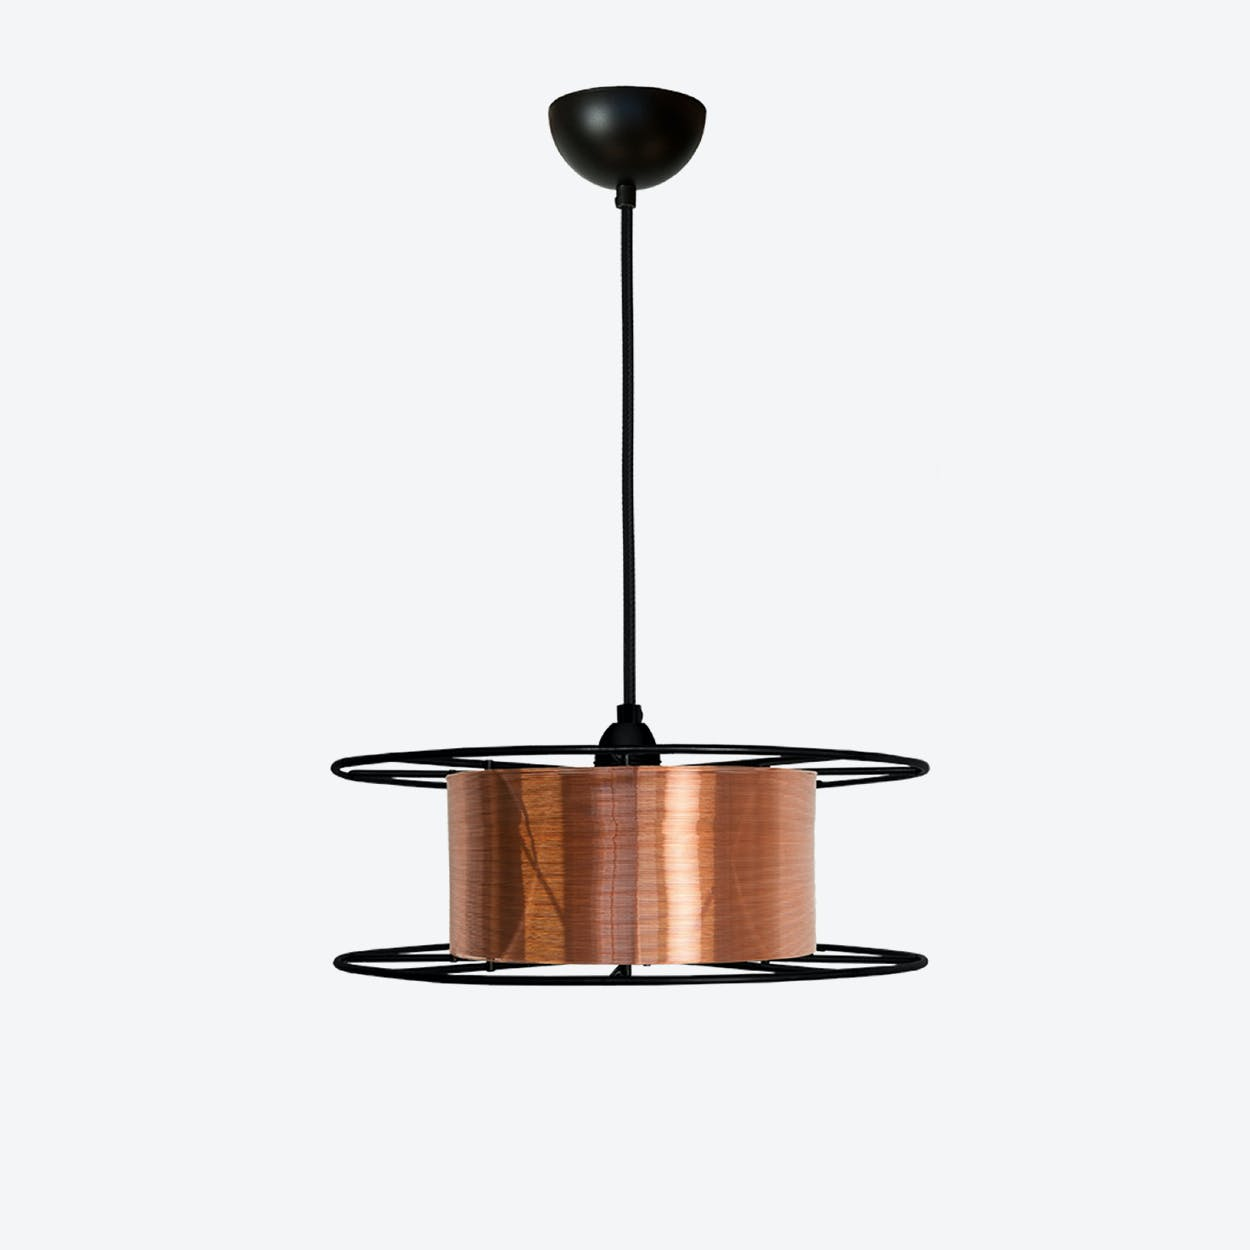 Spool Pendant Light in Black/Copper